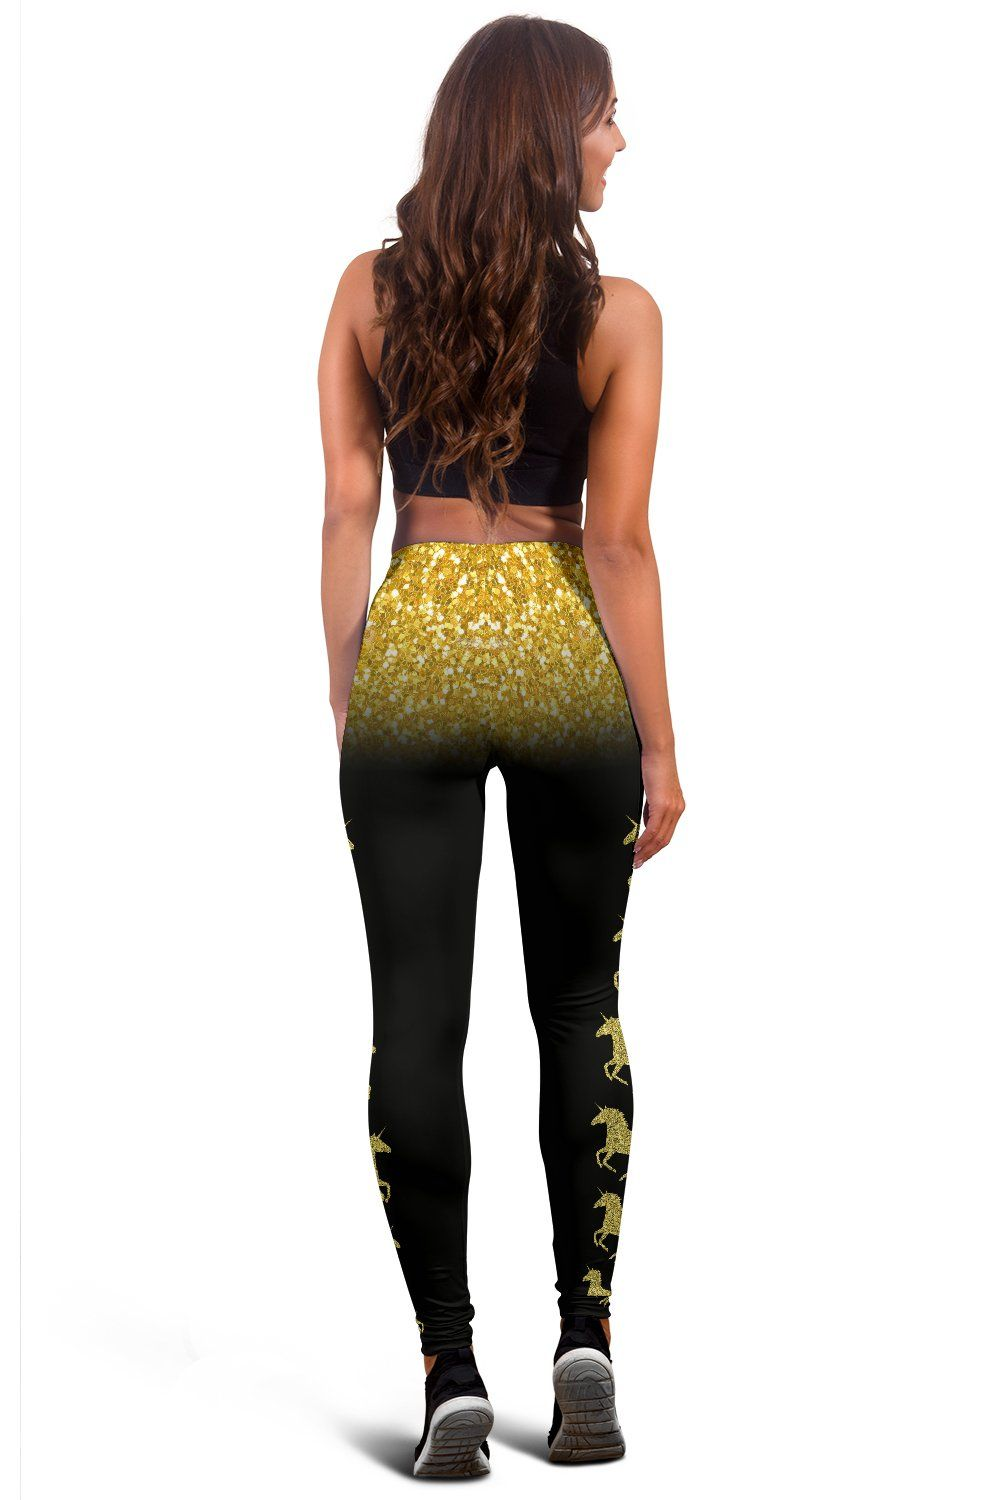 Unicorn Gold Women's Leggings - Express Delivery